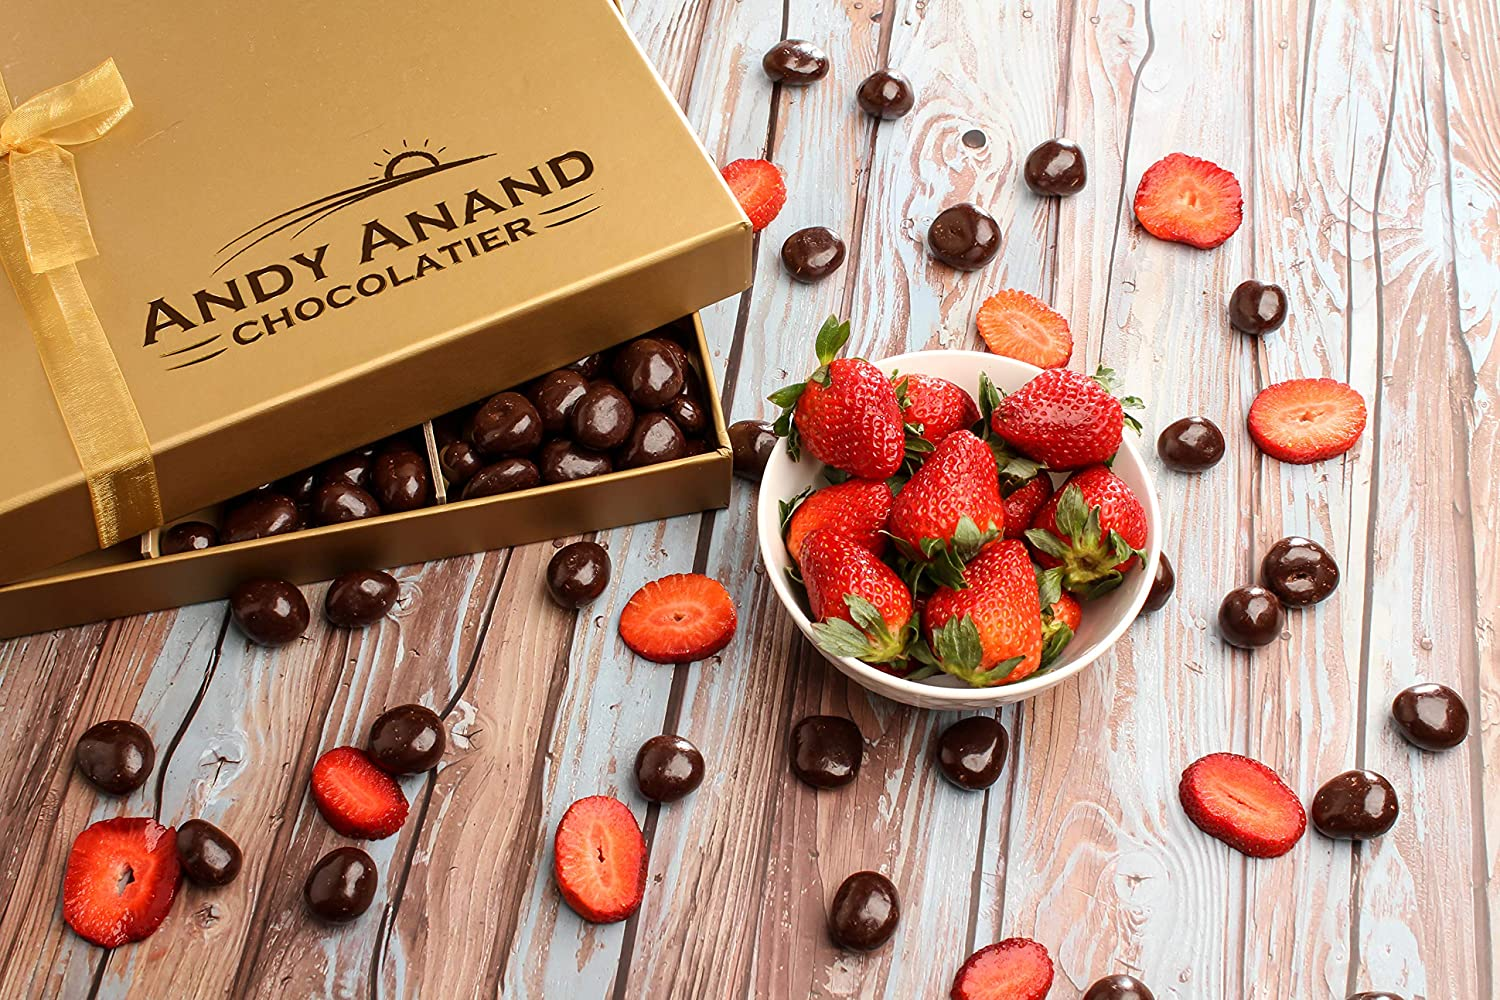 Andy Anand's Chocolates - Premium California Farm Strawberries covered with Rich Dark Chocolate Corporate Gifts, All Natural Certified made from Natural Ingredients- 1 LBS